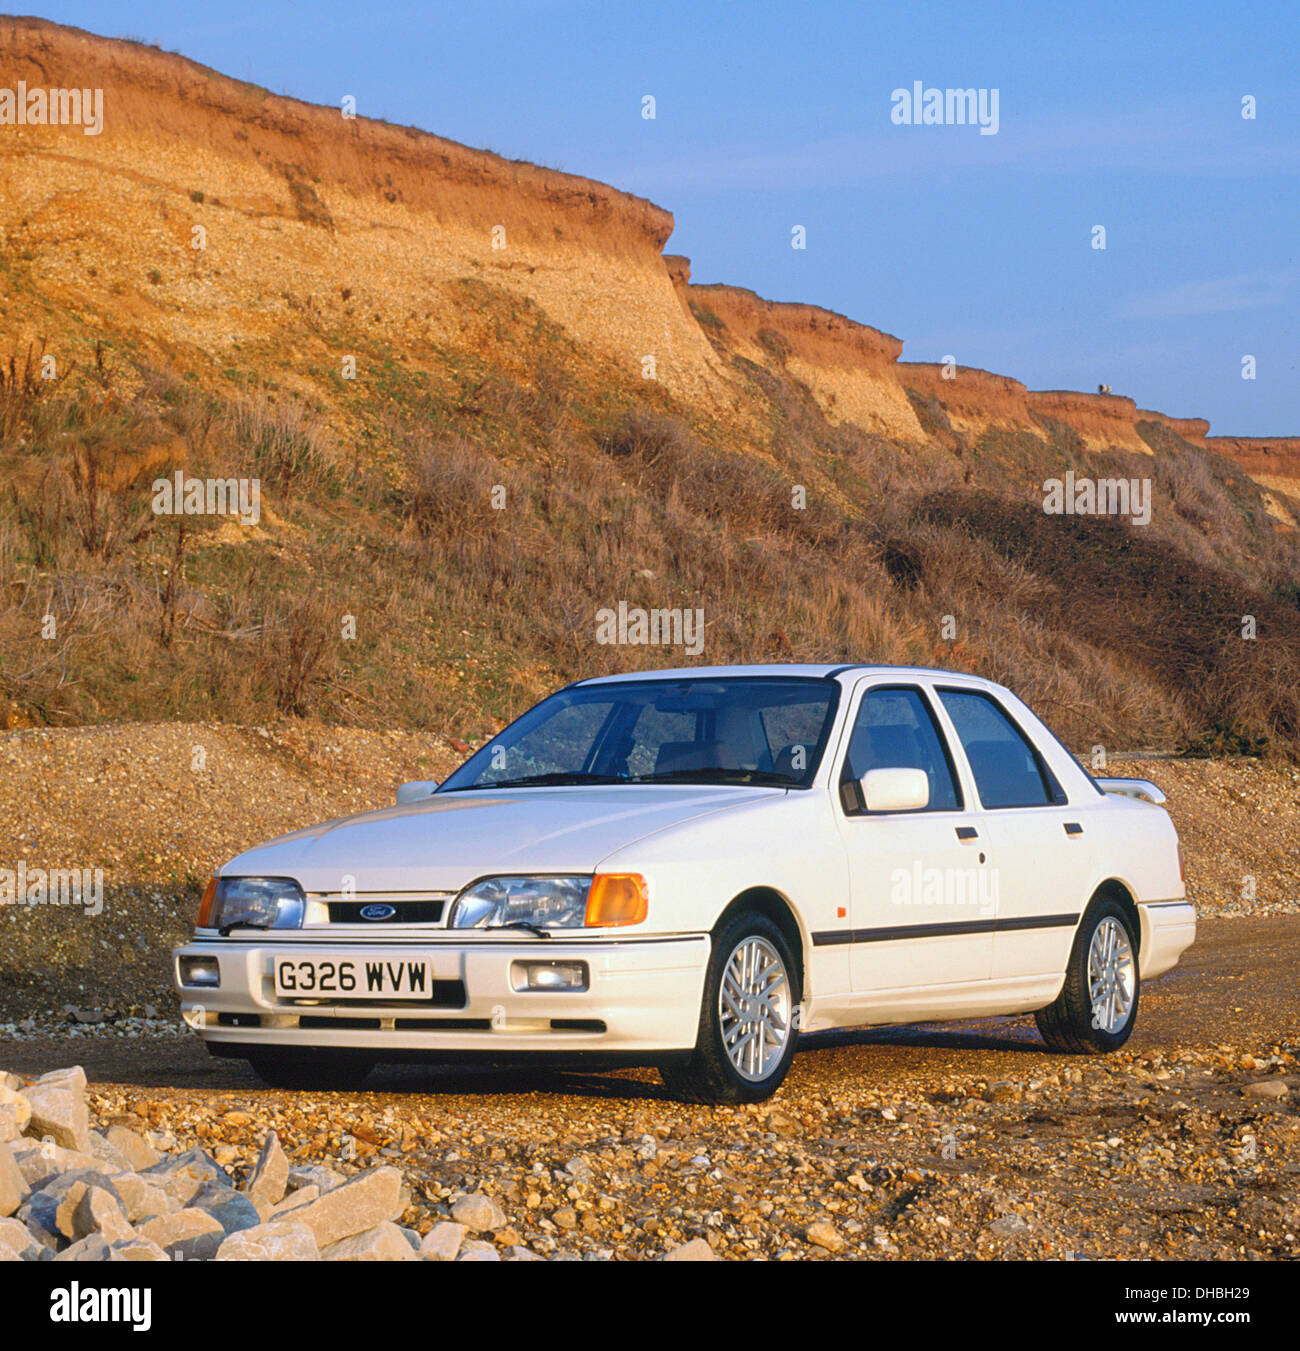 1989 Ford Sierra Sapphire RS Cosworth Immagini Stock